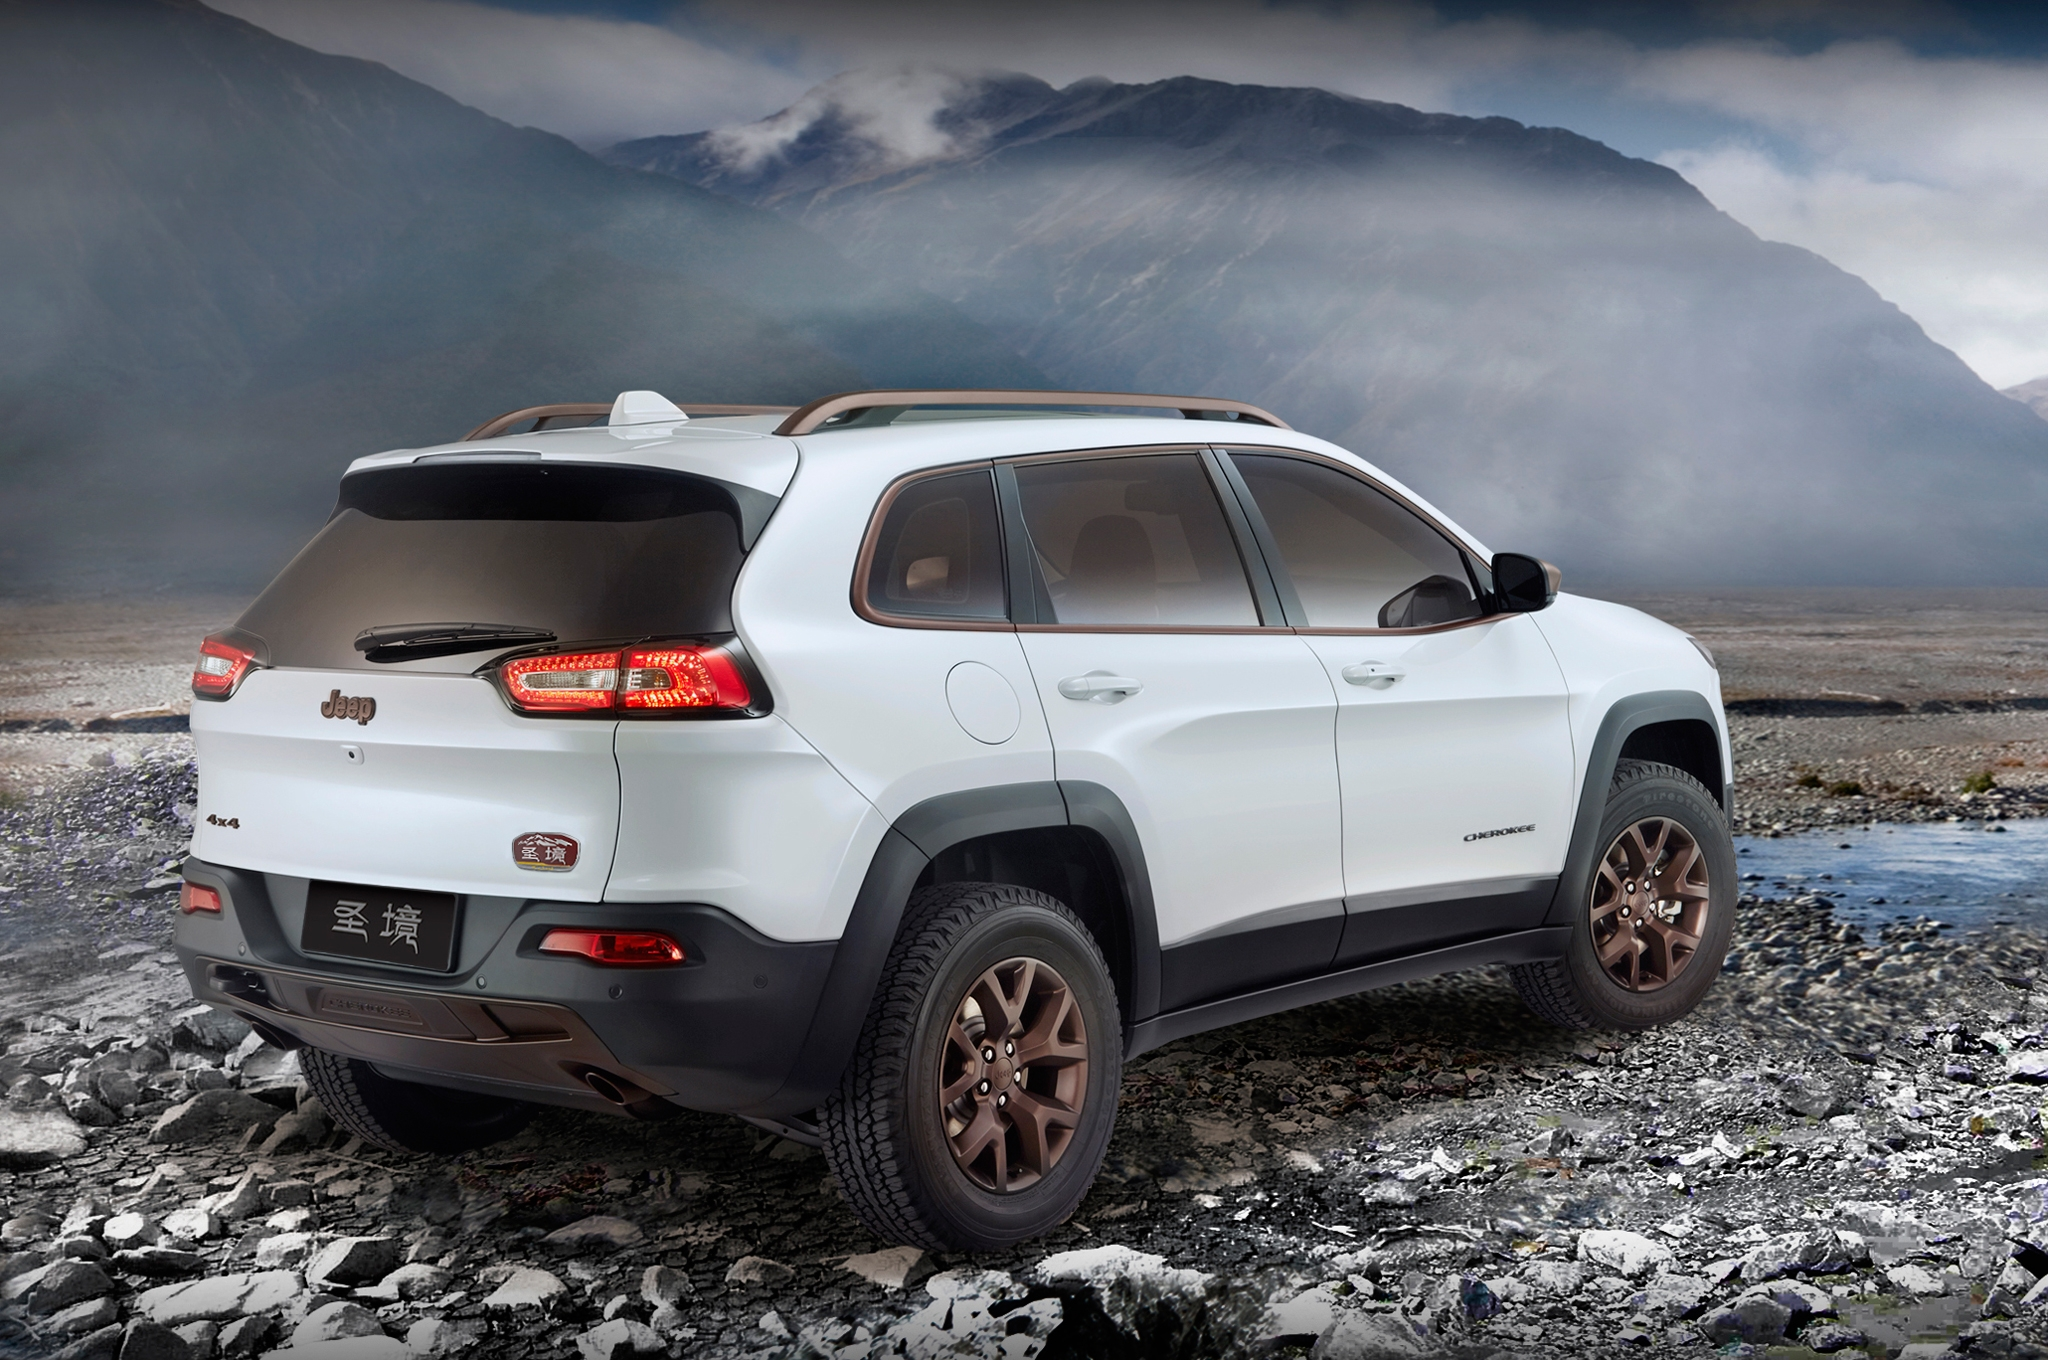 2019 Jeep Cherokee Sageland Concept photo - 2